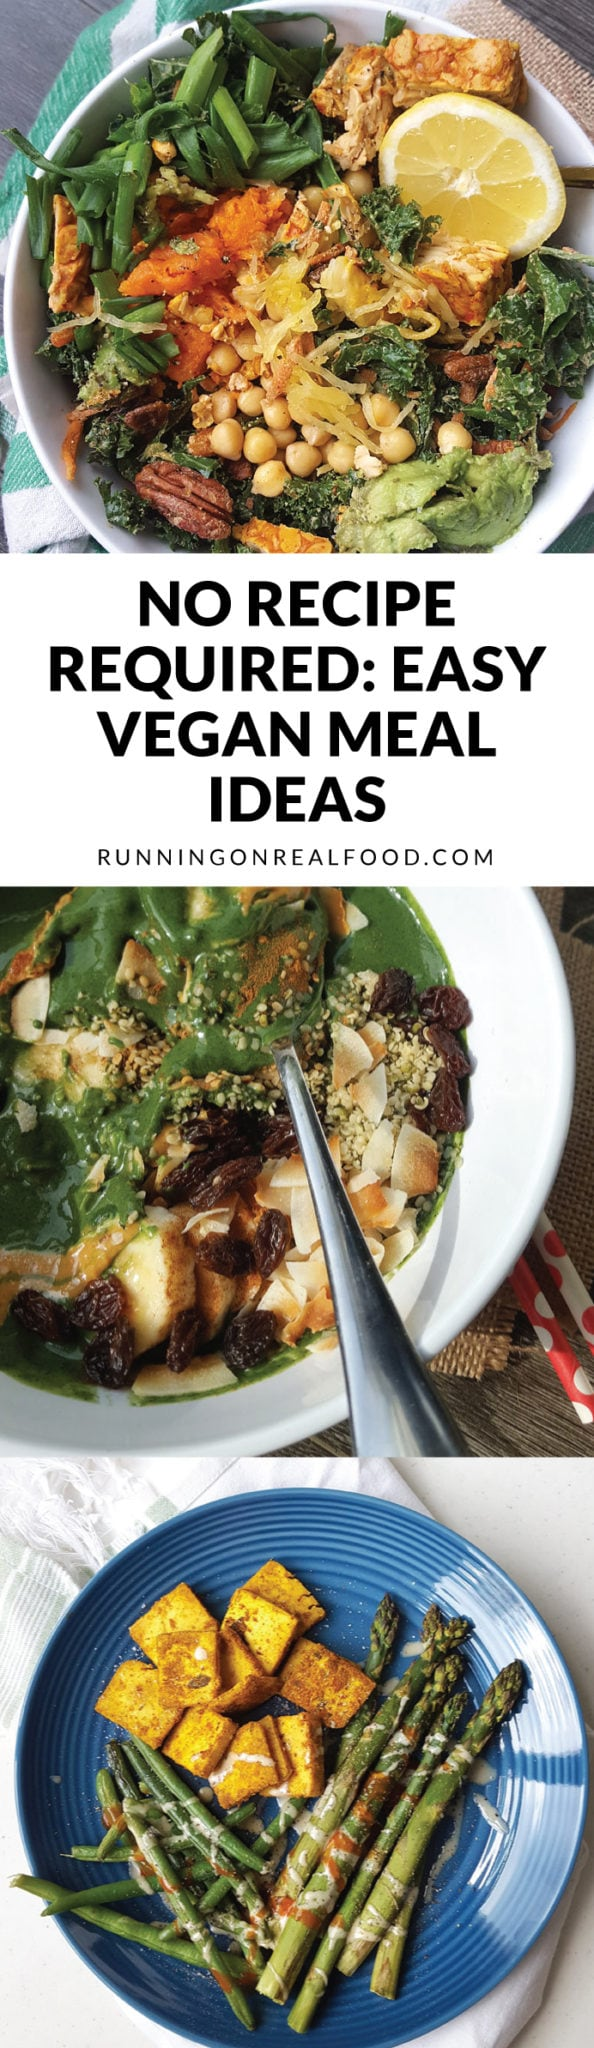 You don't need recipes to create beautiful, vibrant, healthy and delicious vegan meals. Check out these simple meal ideas and get started with plant-based cooking! It's easier than you think.